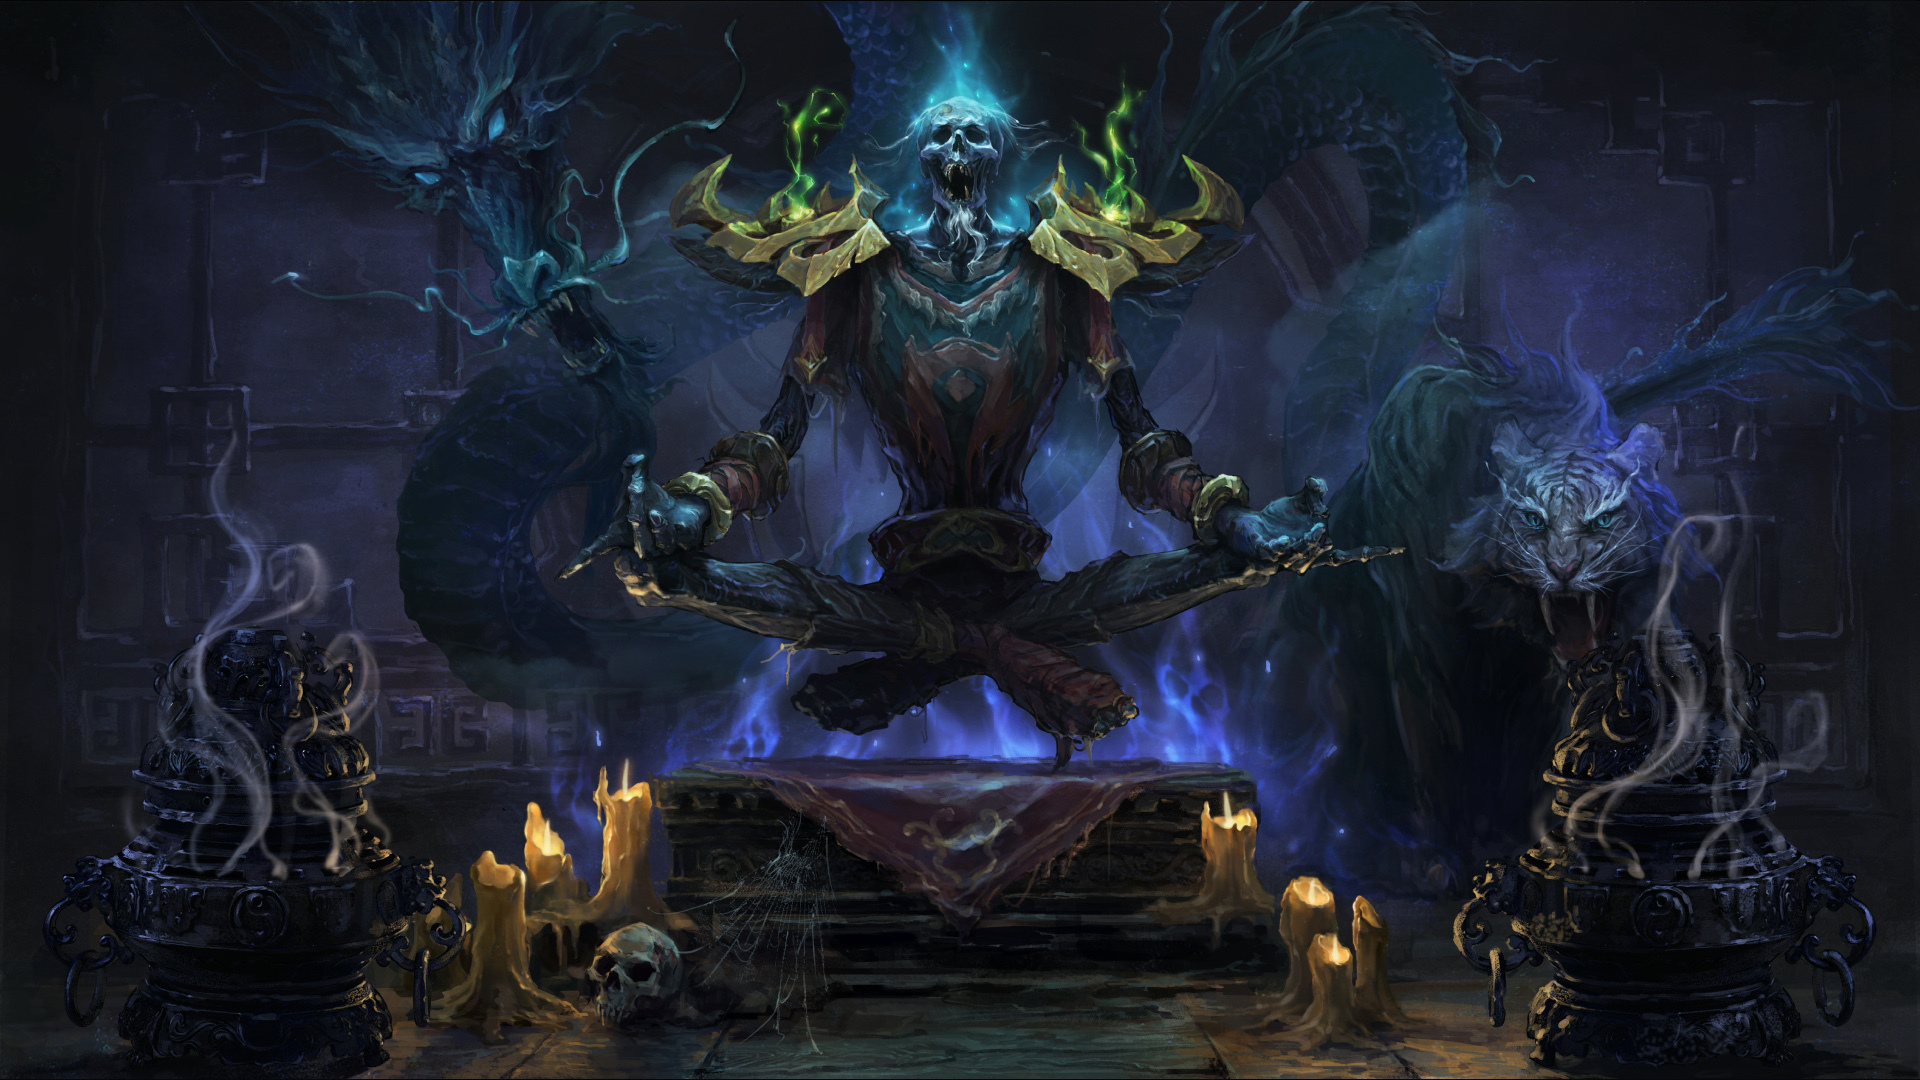 Undead wow art pron pic